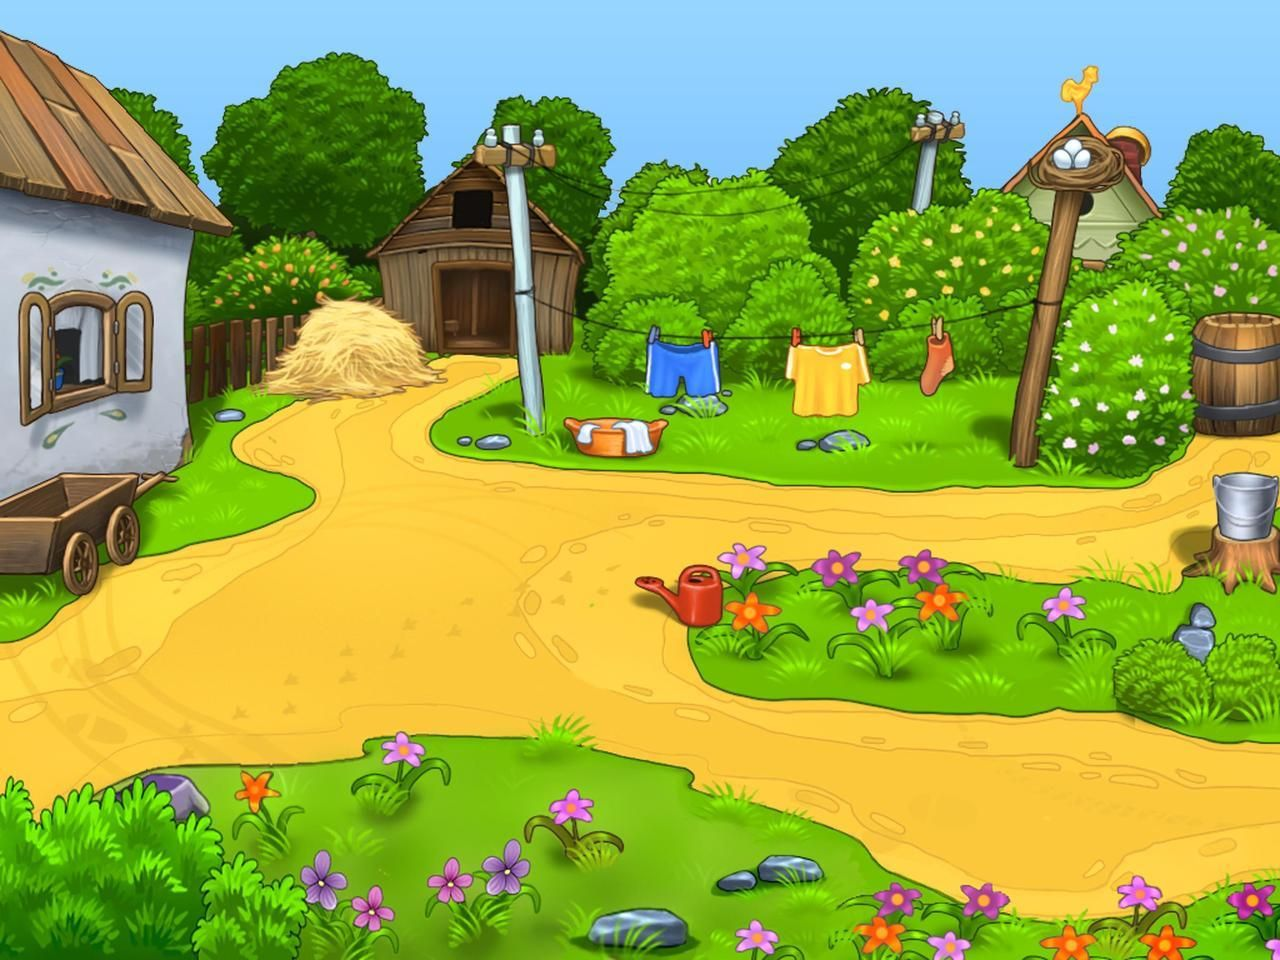 Cartoon House Wallpapers Cartoon House Wallpapers Pictures Nbsp6gallery Cartoon Background Cartoon Wallpaper Cartoon House